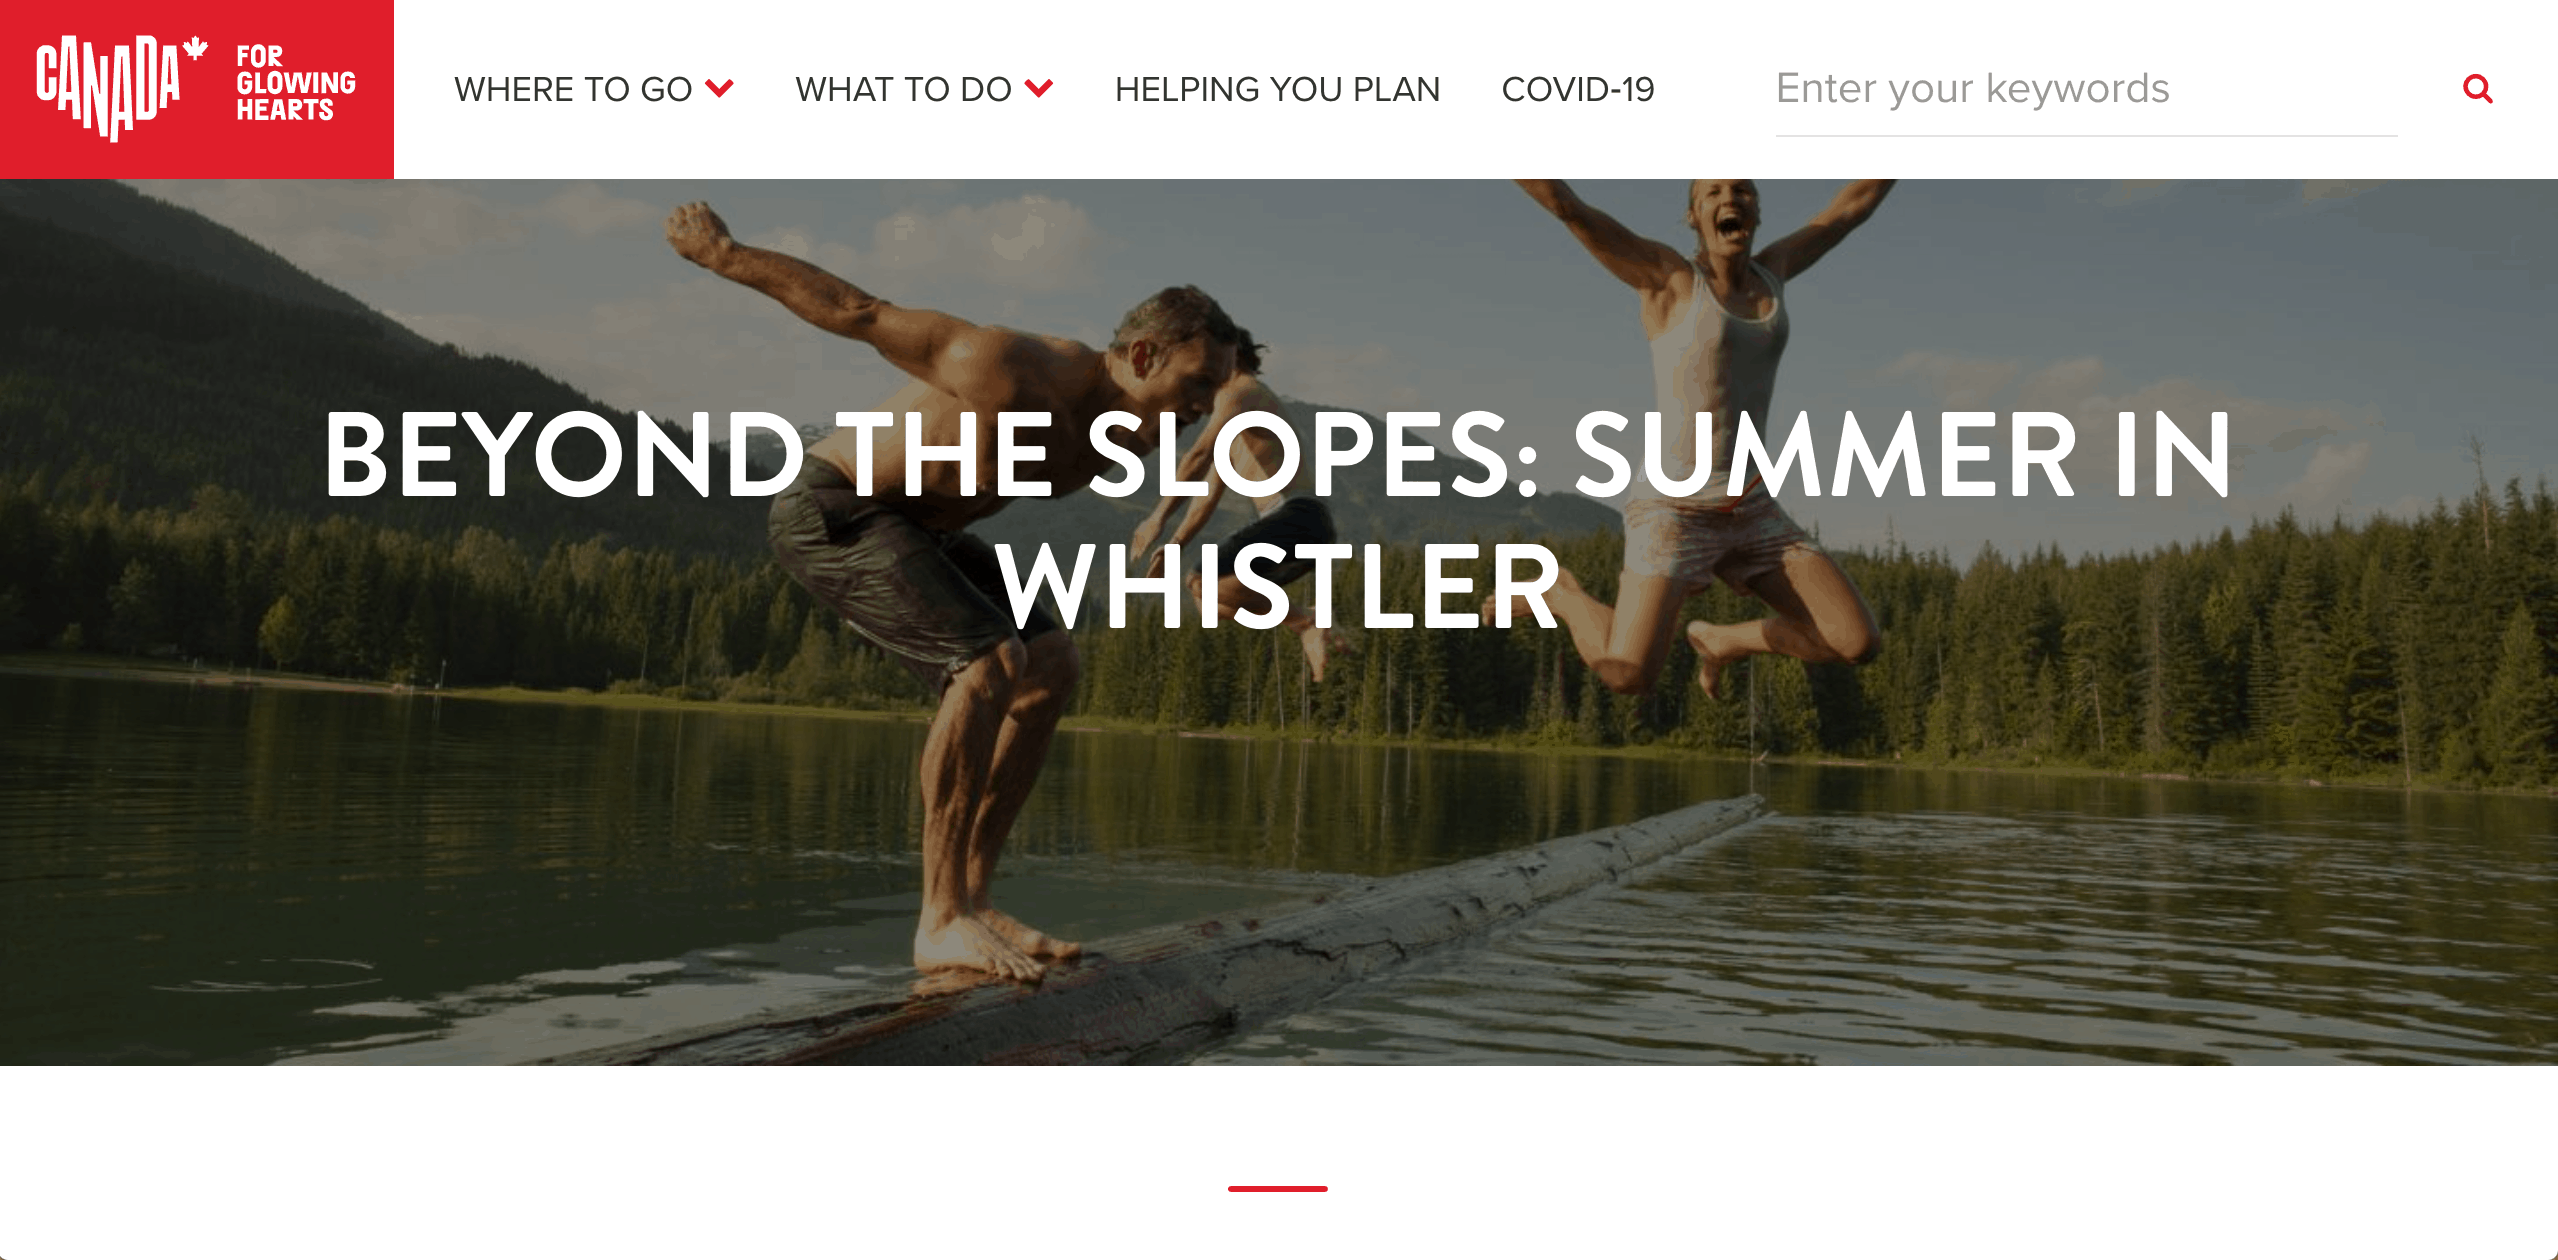 Keep Exploring Canada - Beyond the Slopes in Whistler